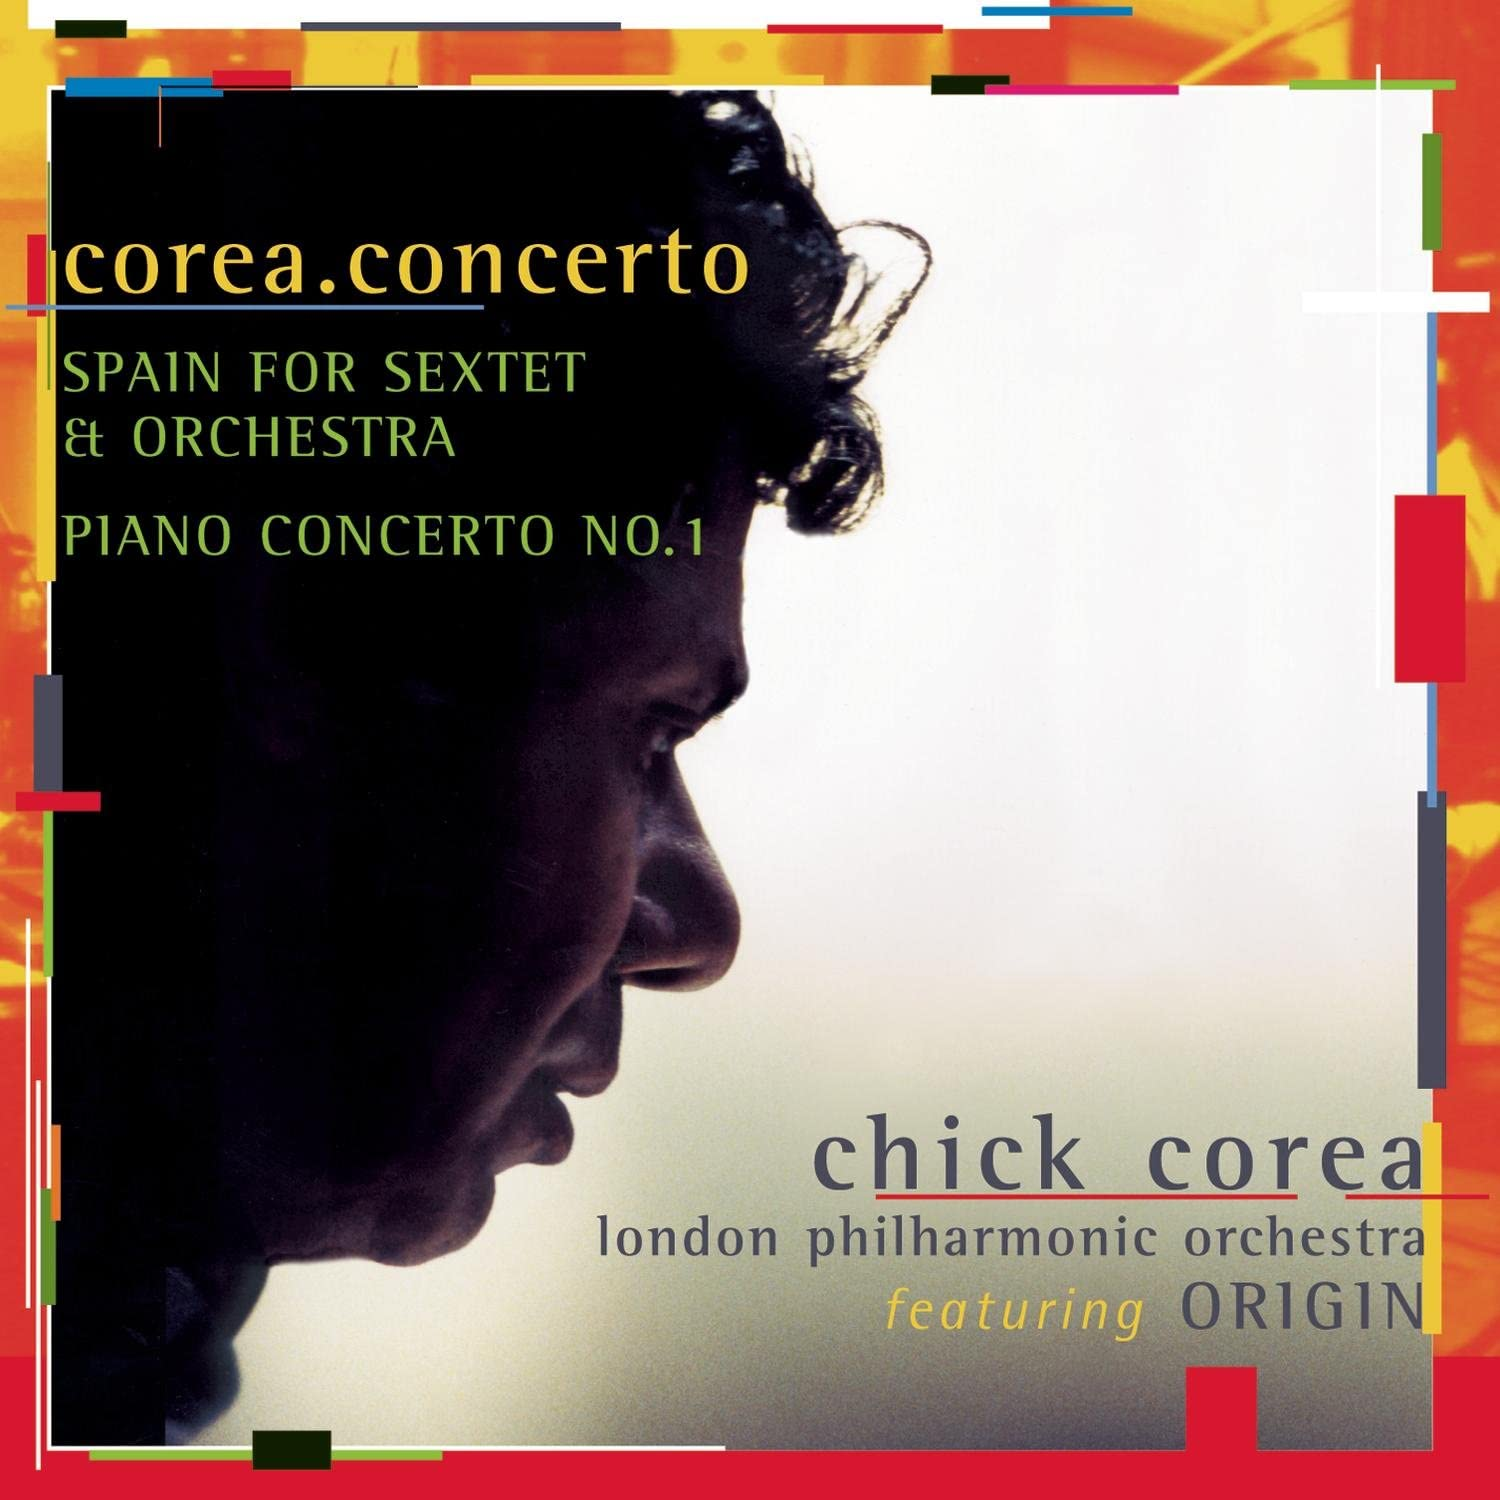 Interview with Chick Corea